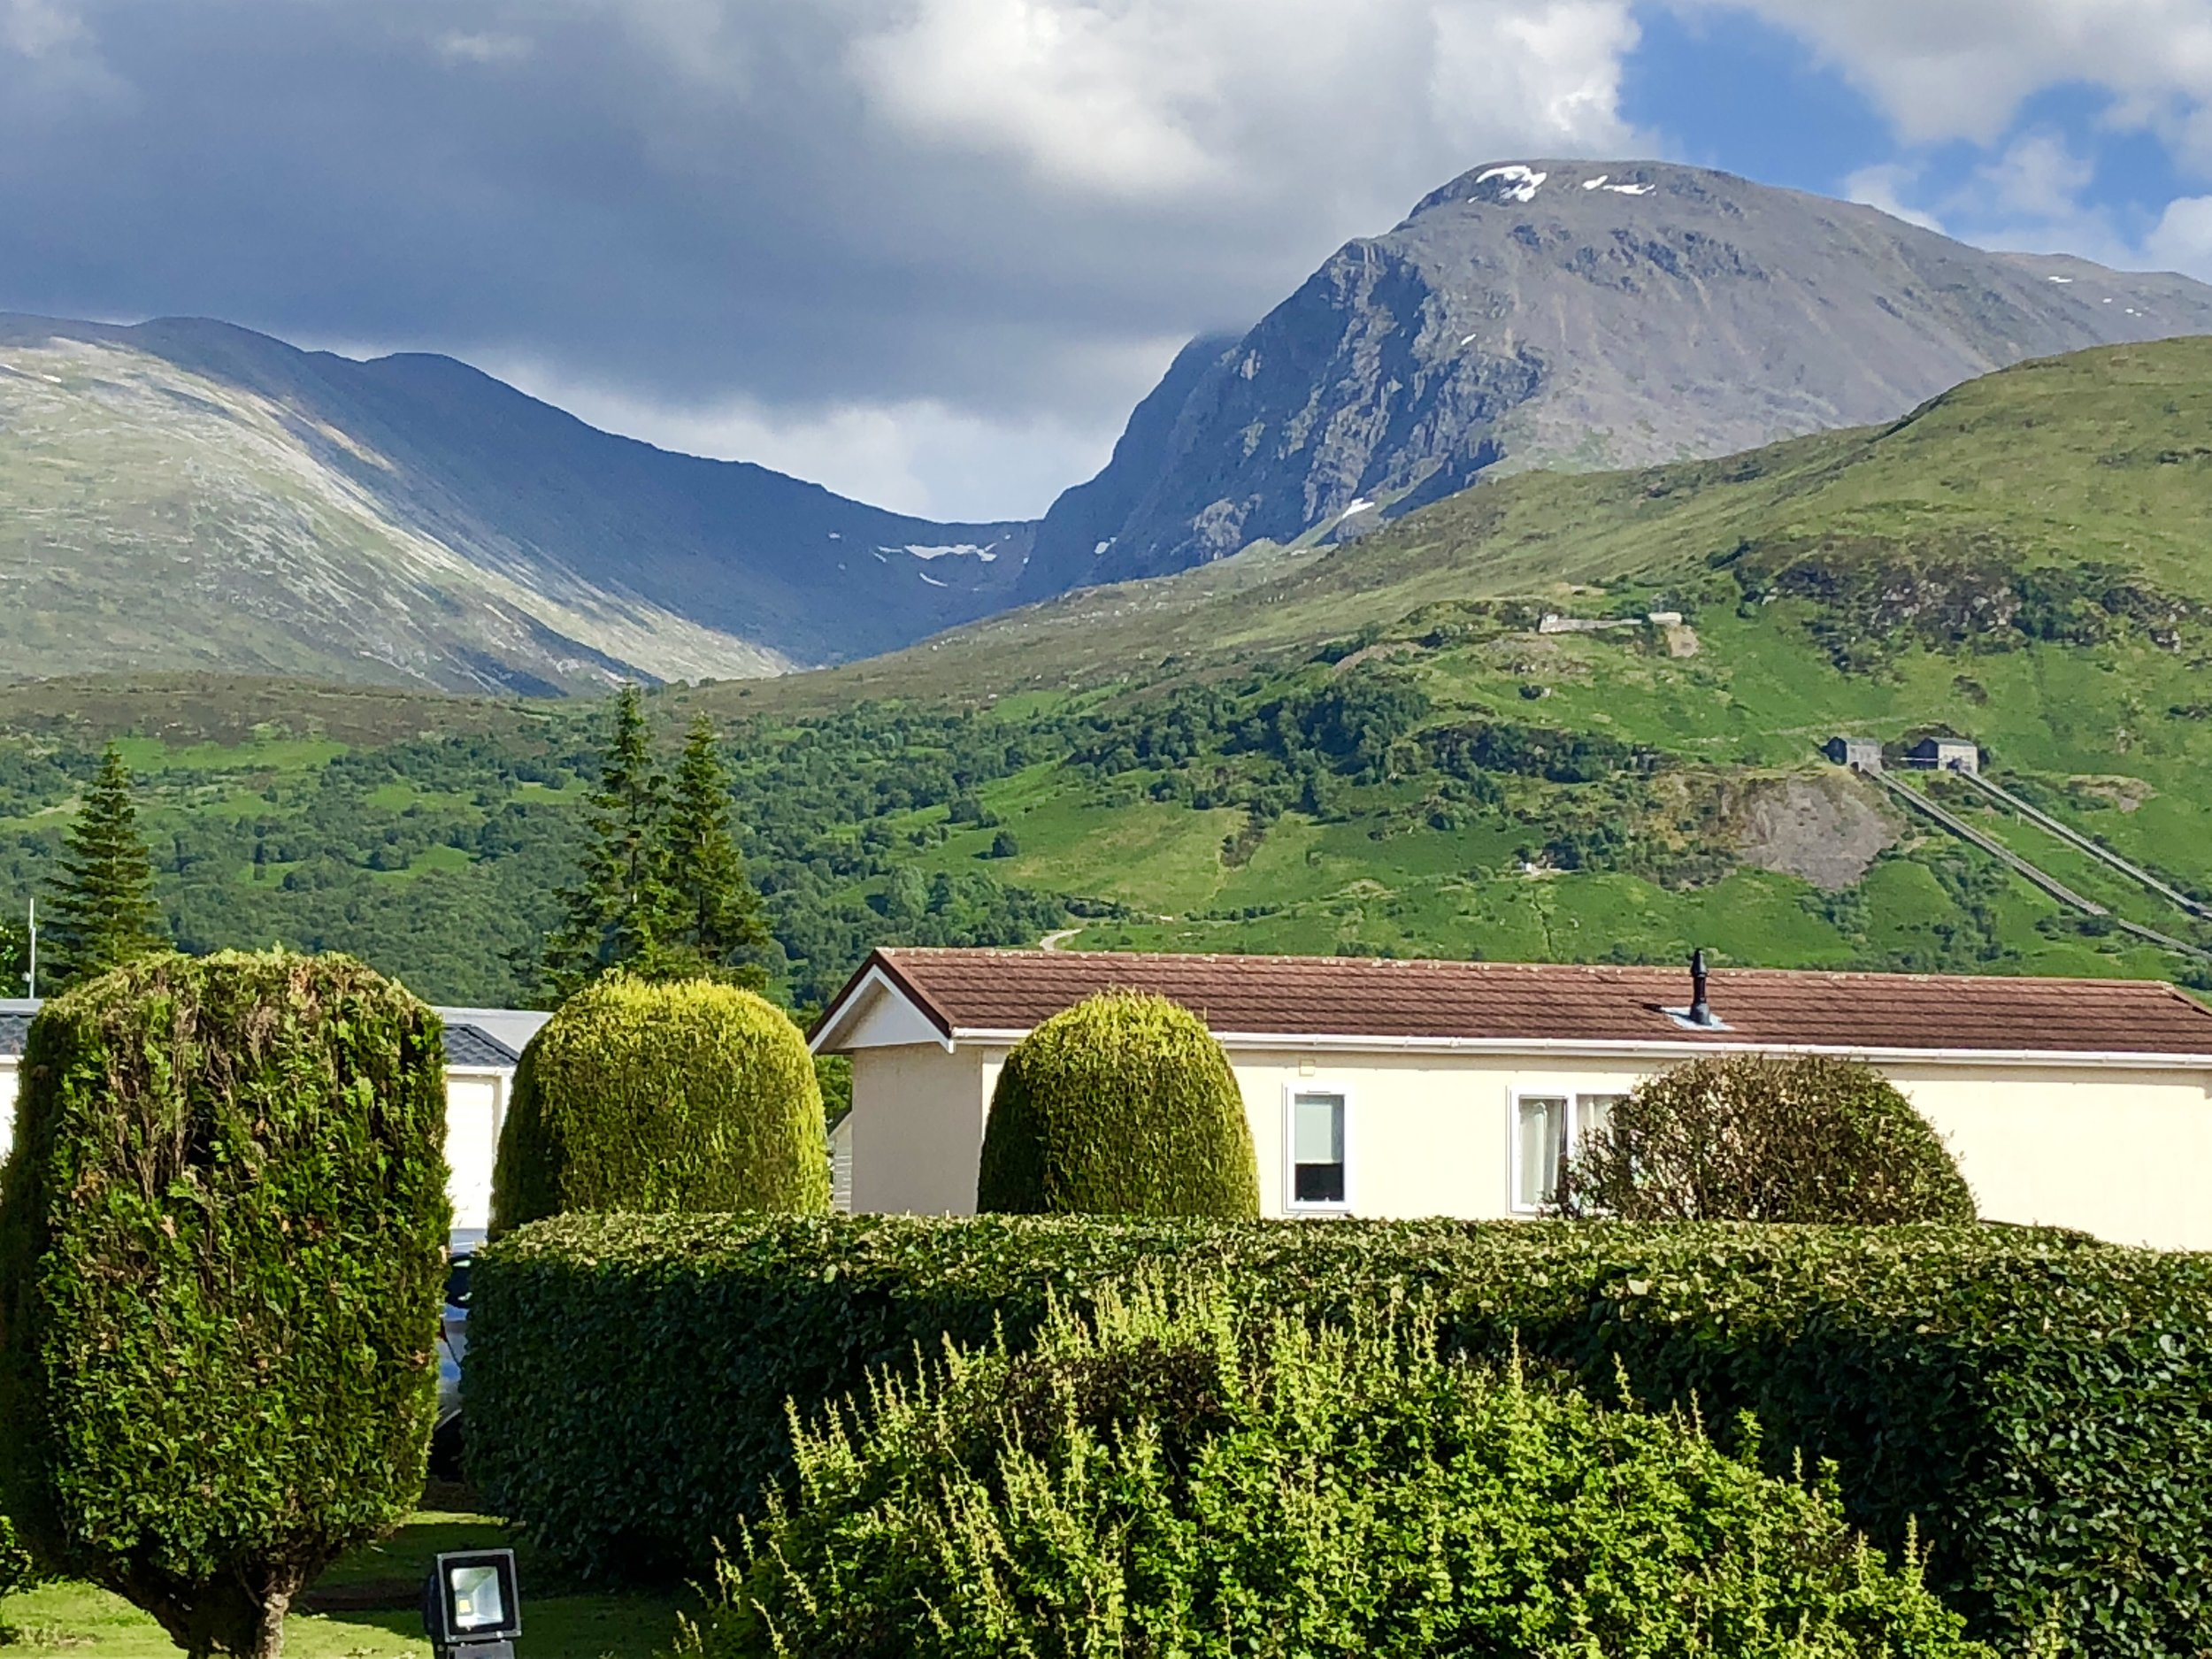 Our very first view of 'The Ben' when we arrived at our stay in Lochey Park...